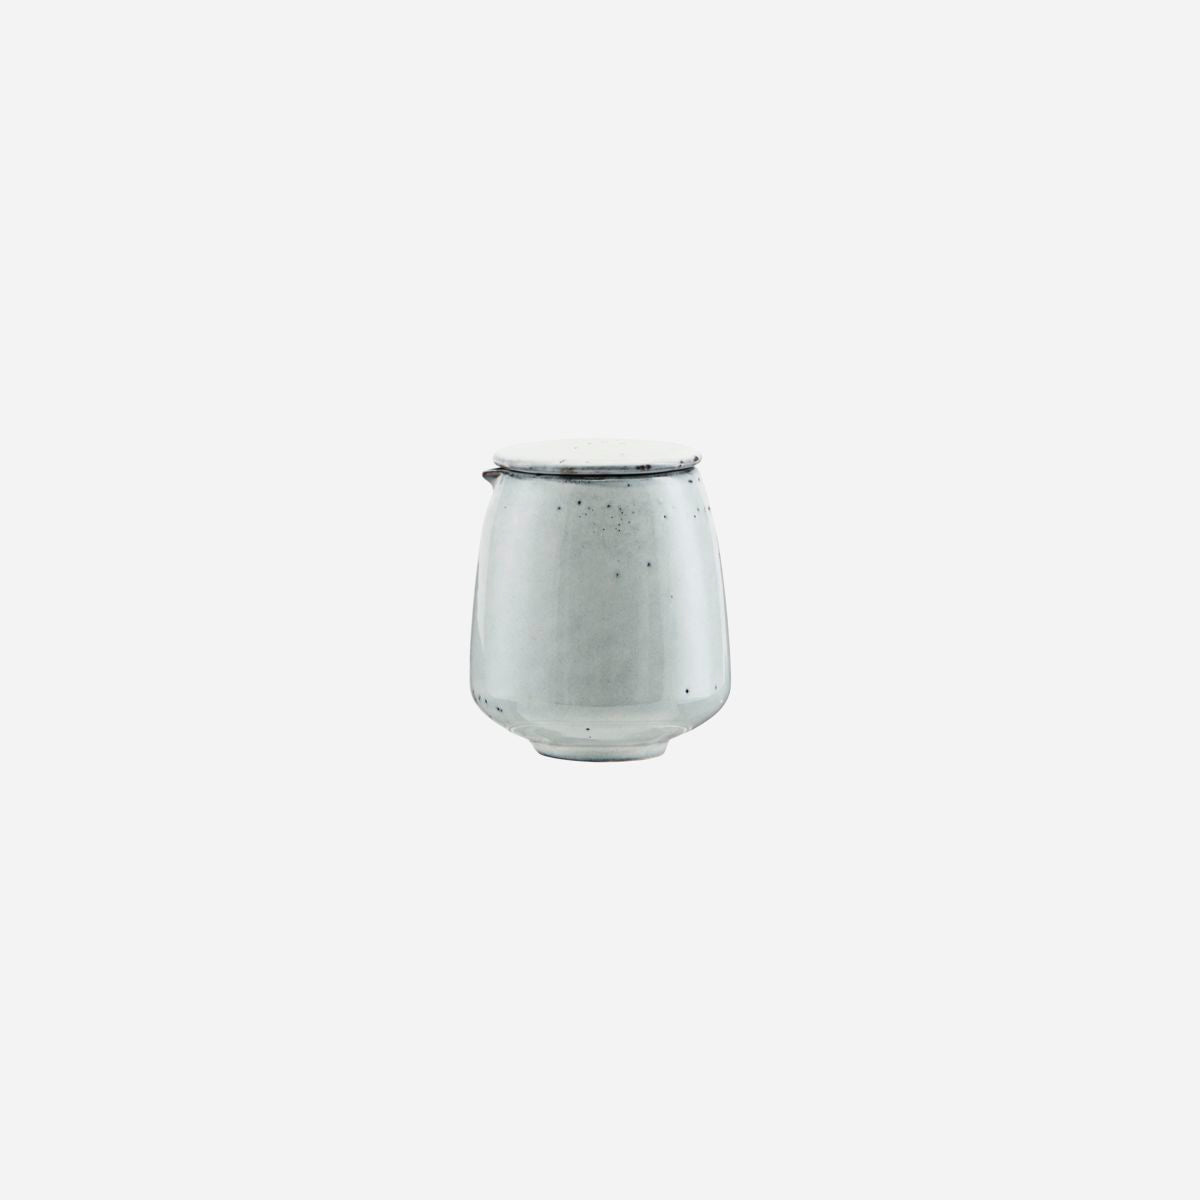 Soy Sauce Container Blue/Grey